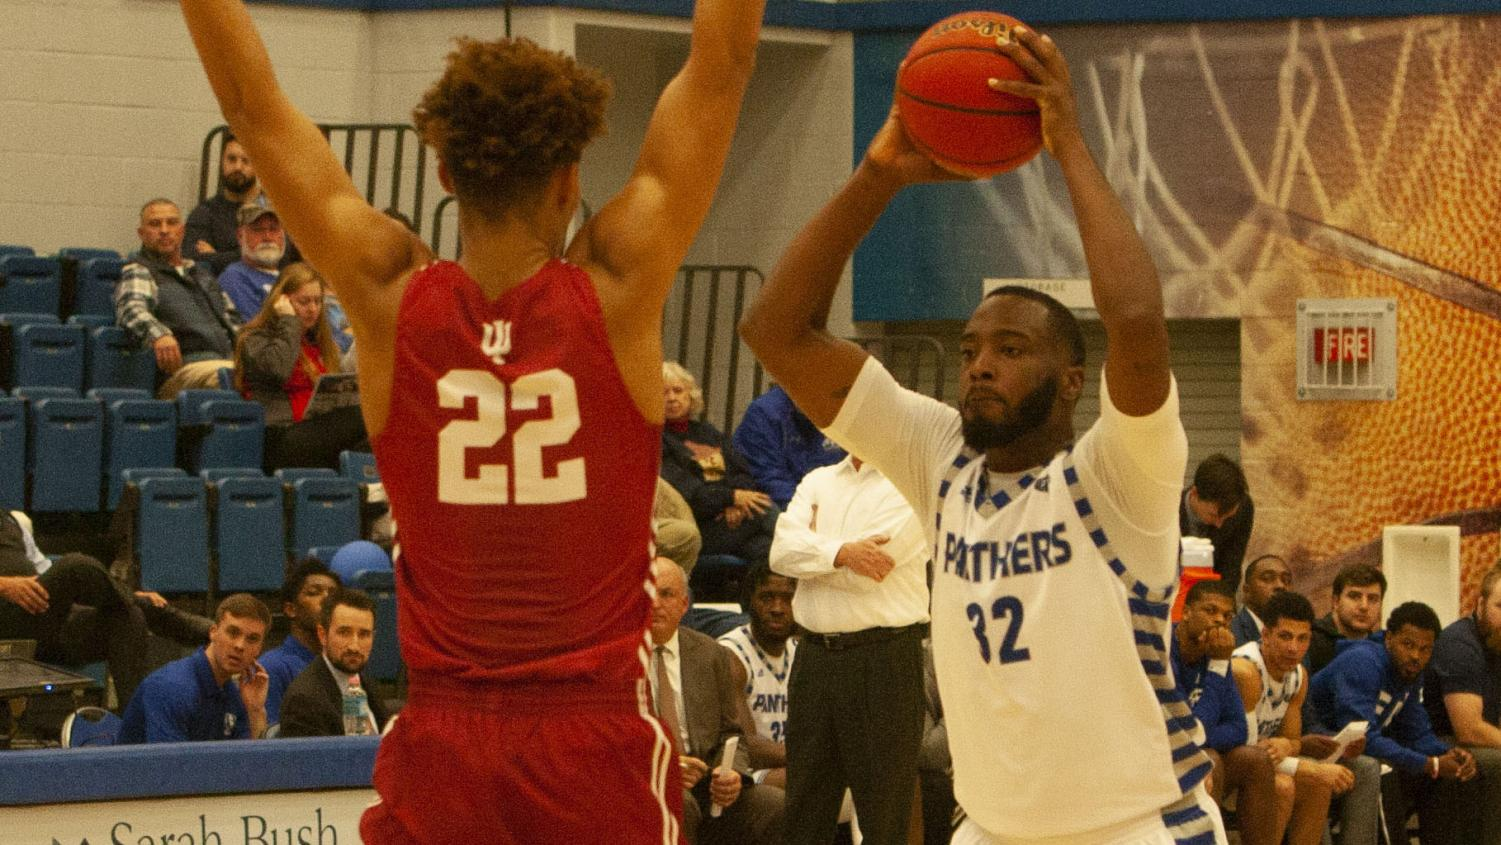 Eastern forward JaQualis Matlock looks to pass the ball inside from the top of the key against Indiana Northwest on Nov. 18 in Lantz Arena. Matlock had six points, four rebounds and two blocks in the Panthers' 114-61 win.